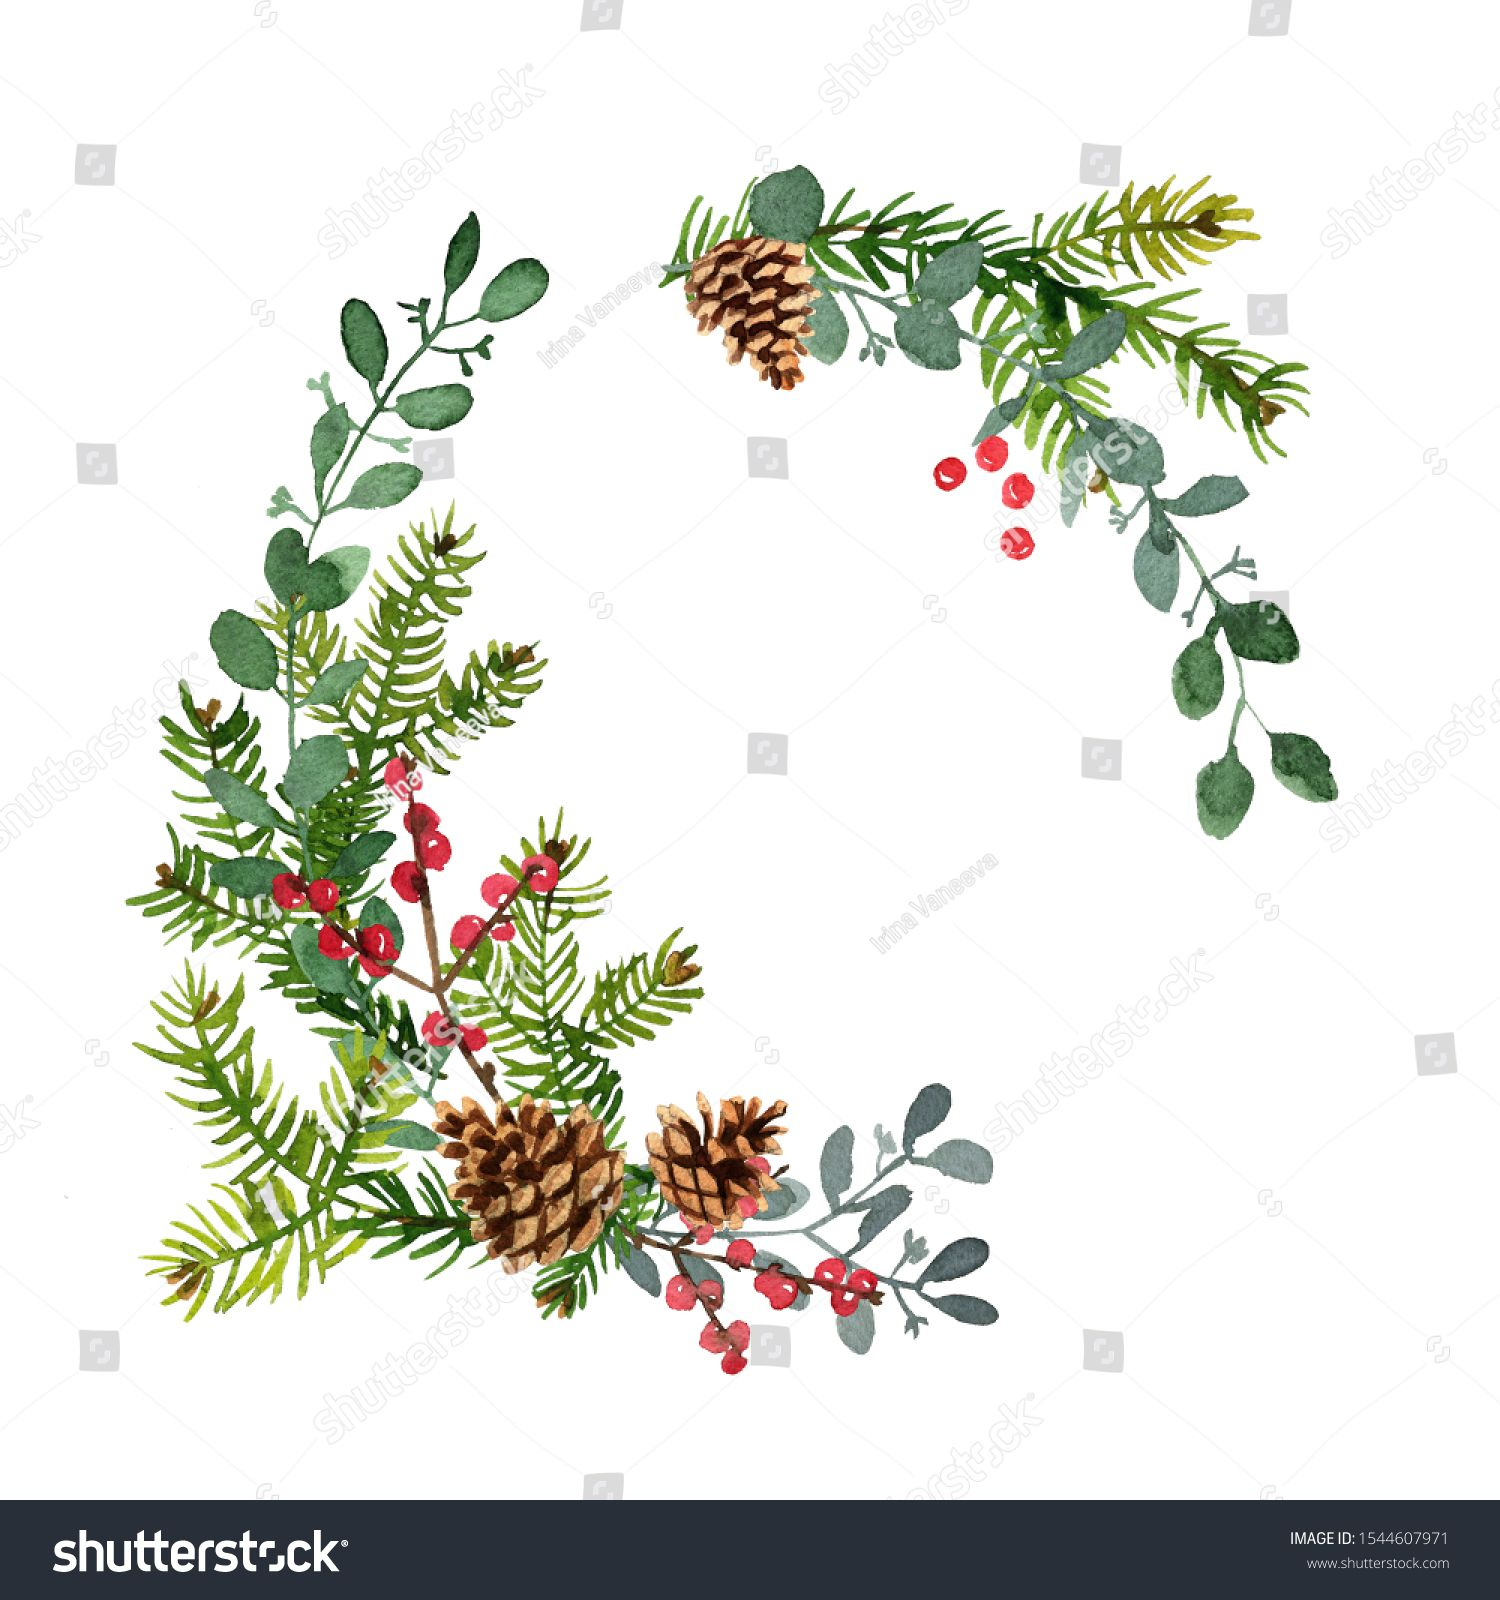 Christmas Decor Wreath Made Of Christmas Tree Branches Painted With Watercolors On White Back In 2020 Christmas Decorations Christmas Tree Branches How To Make Wreaths